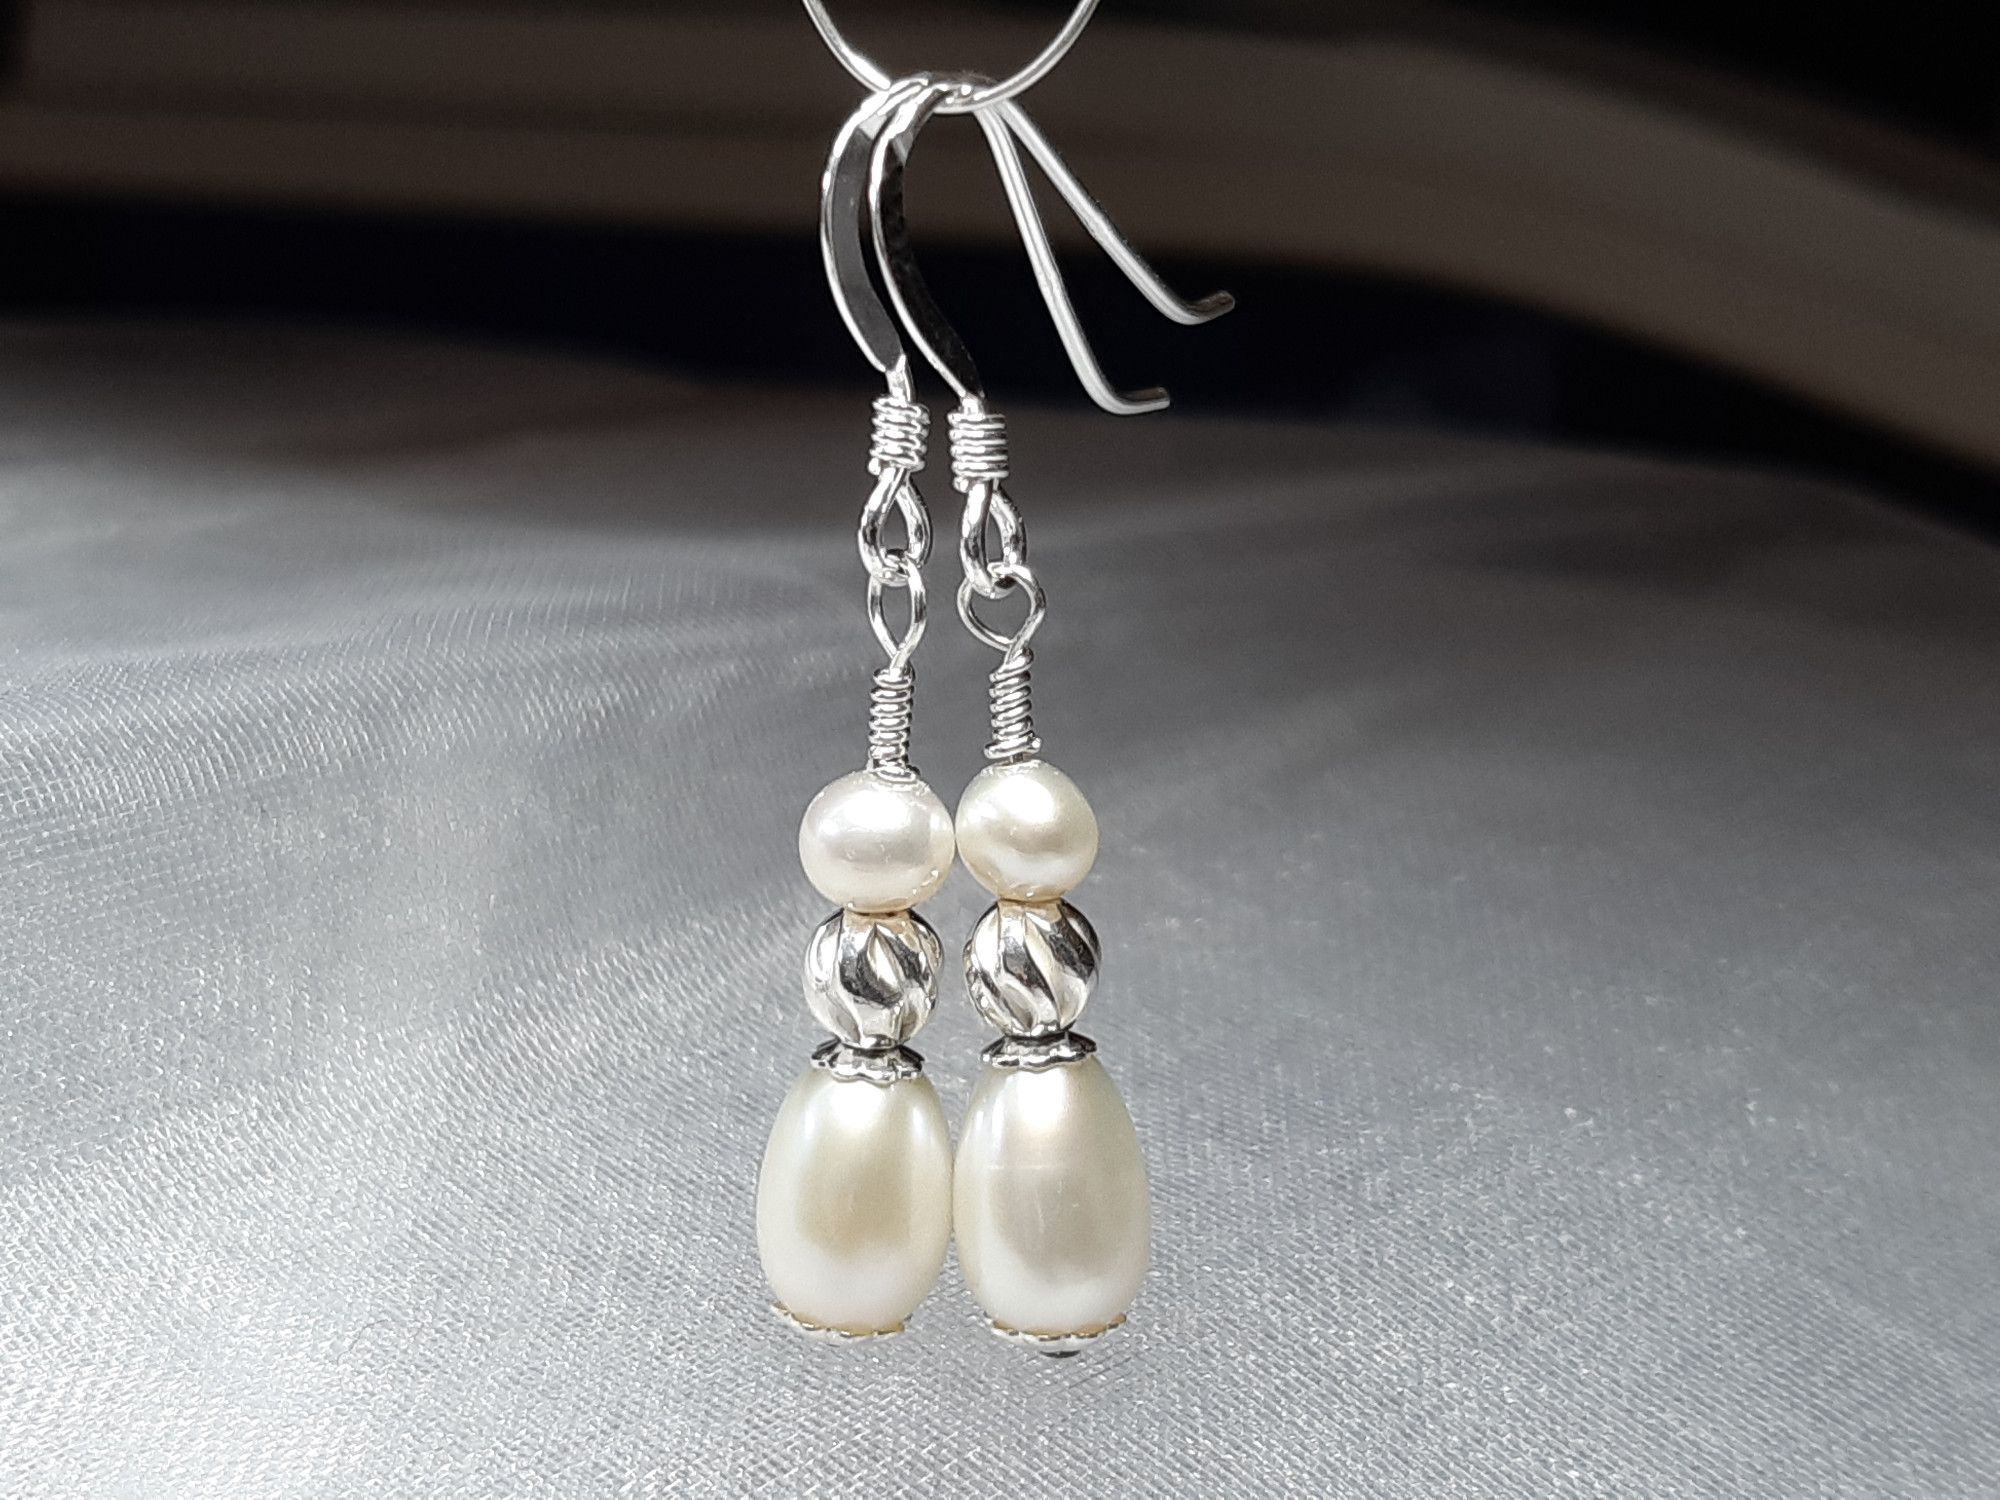 Occasion-bridal-pearl drop earrings with sterling silver-2